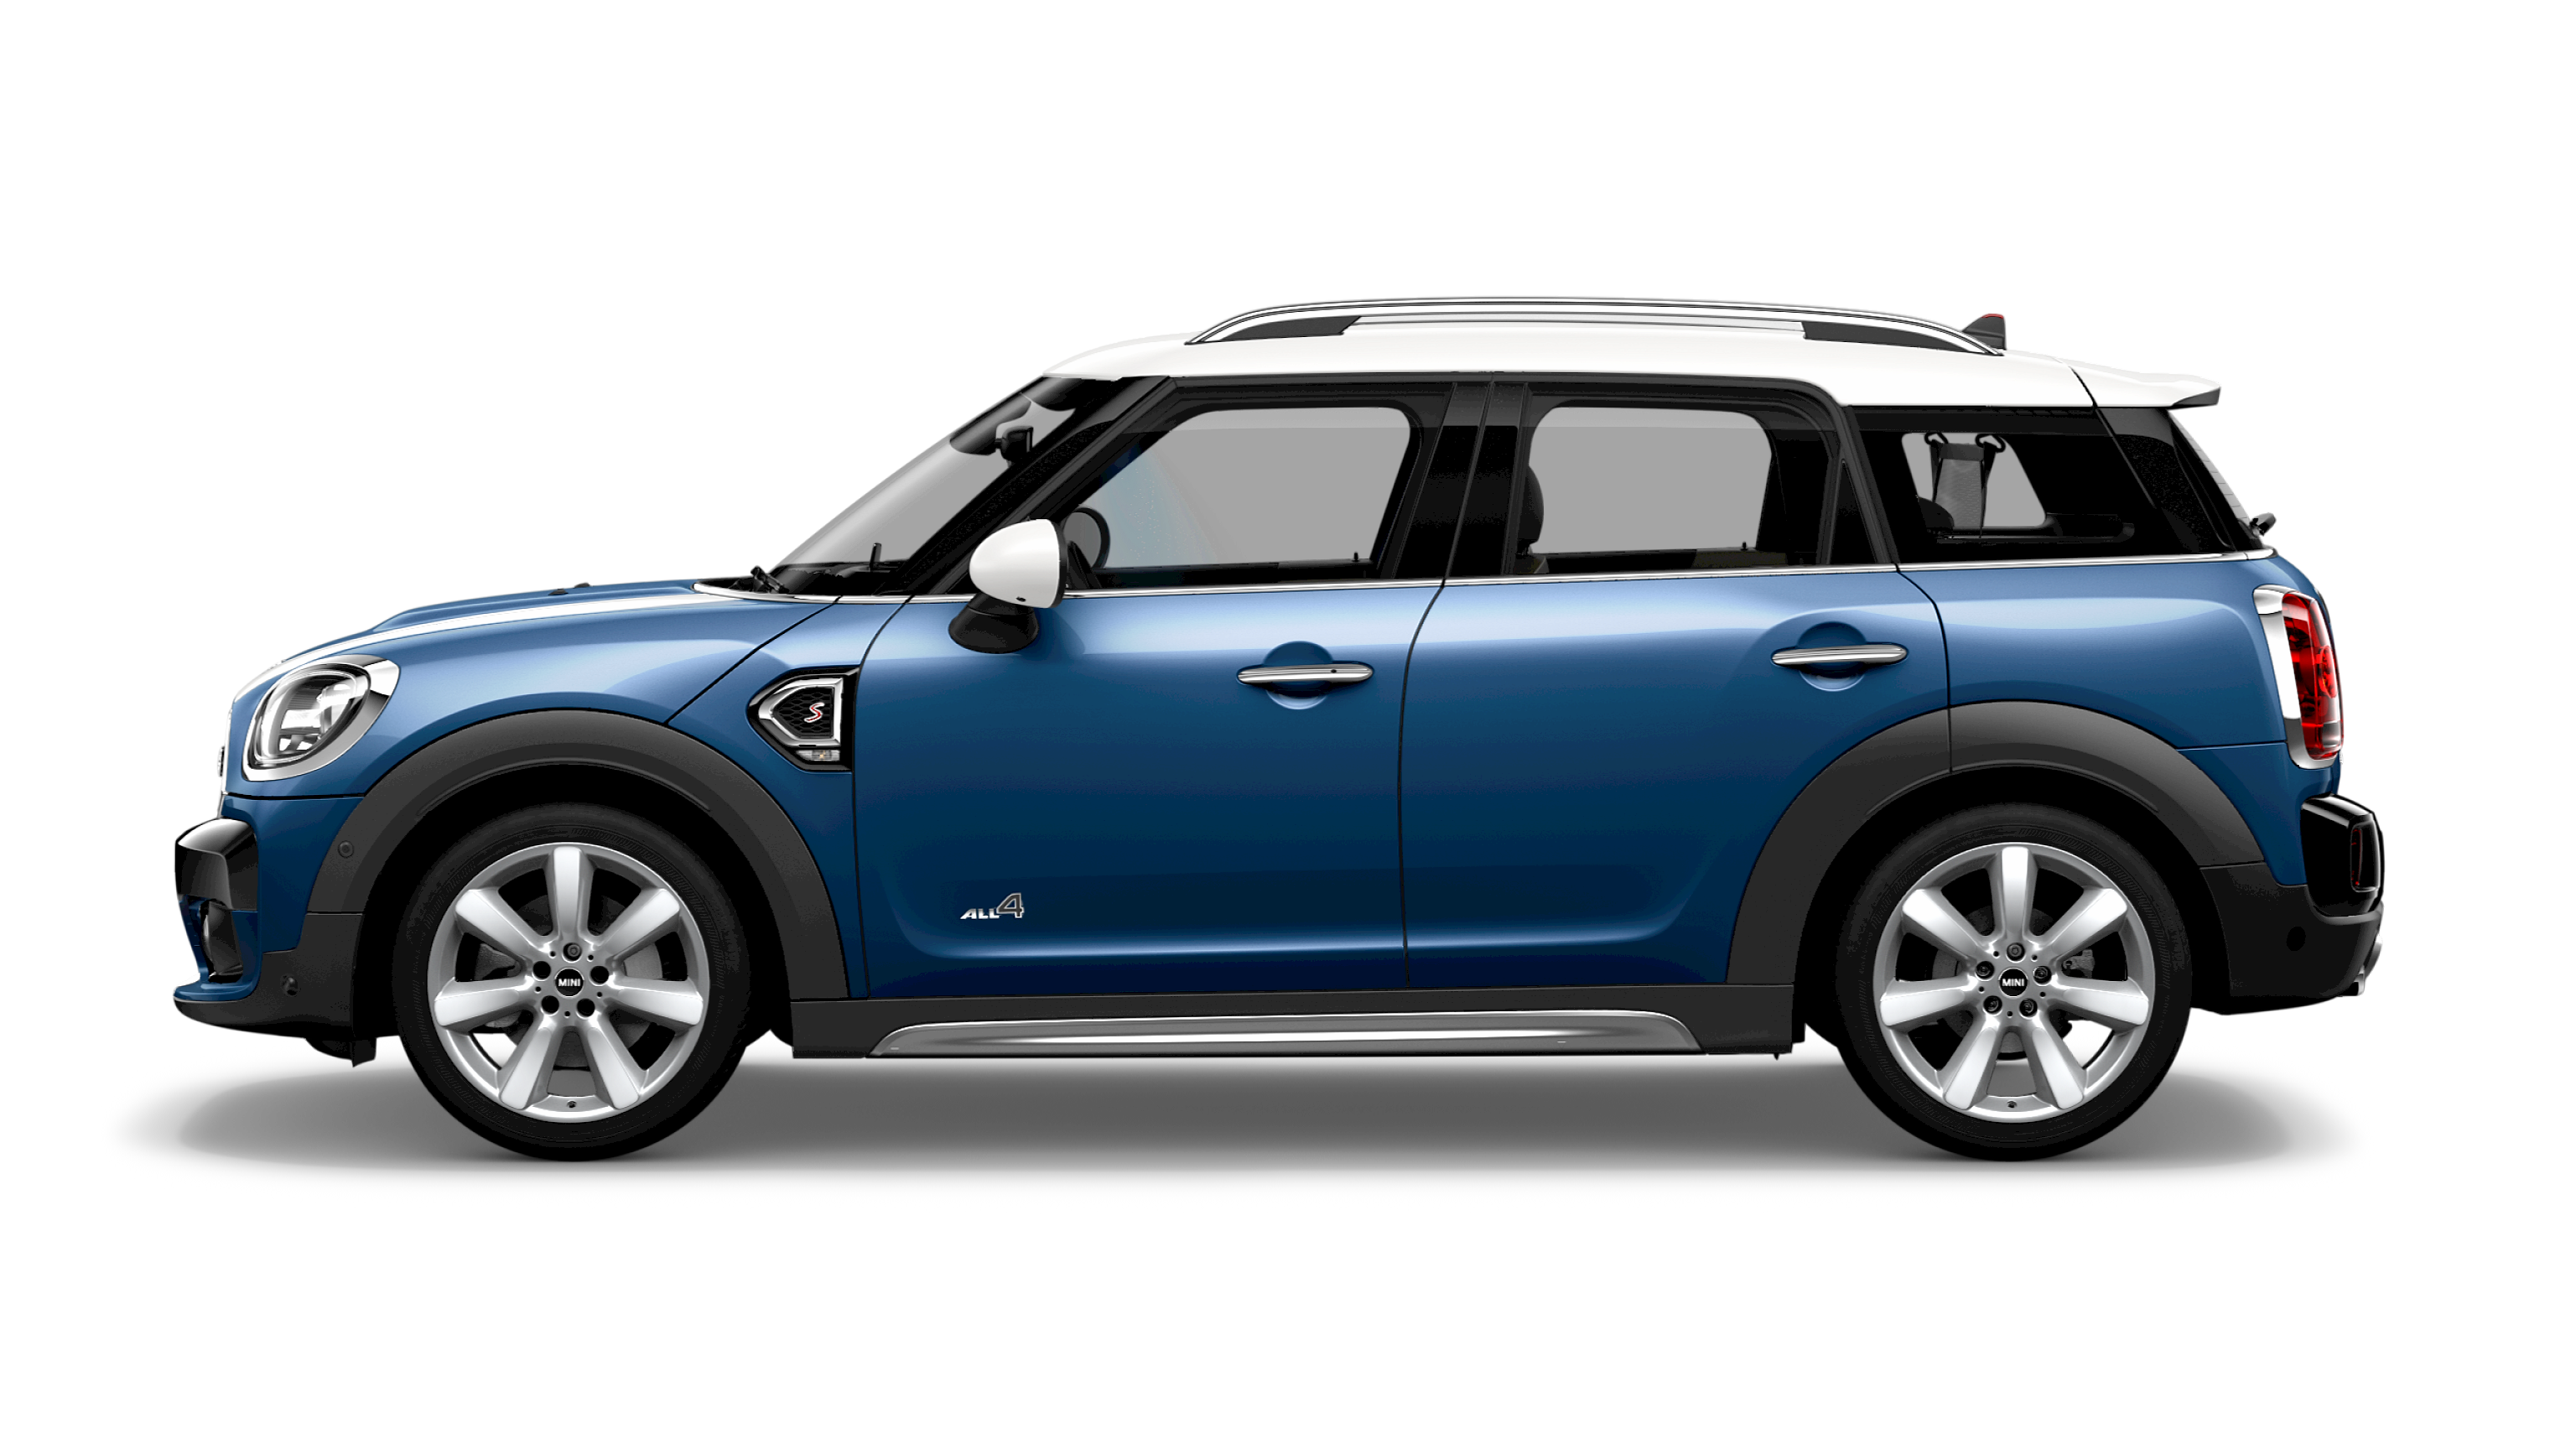 MINI COUNTRYMAN VISTA LATERAL